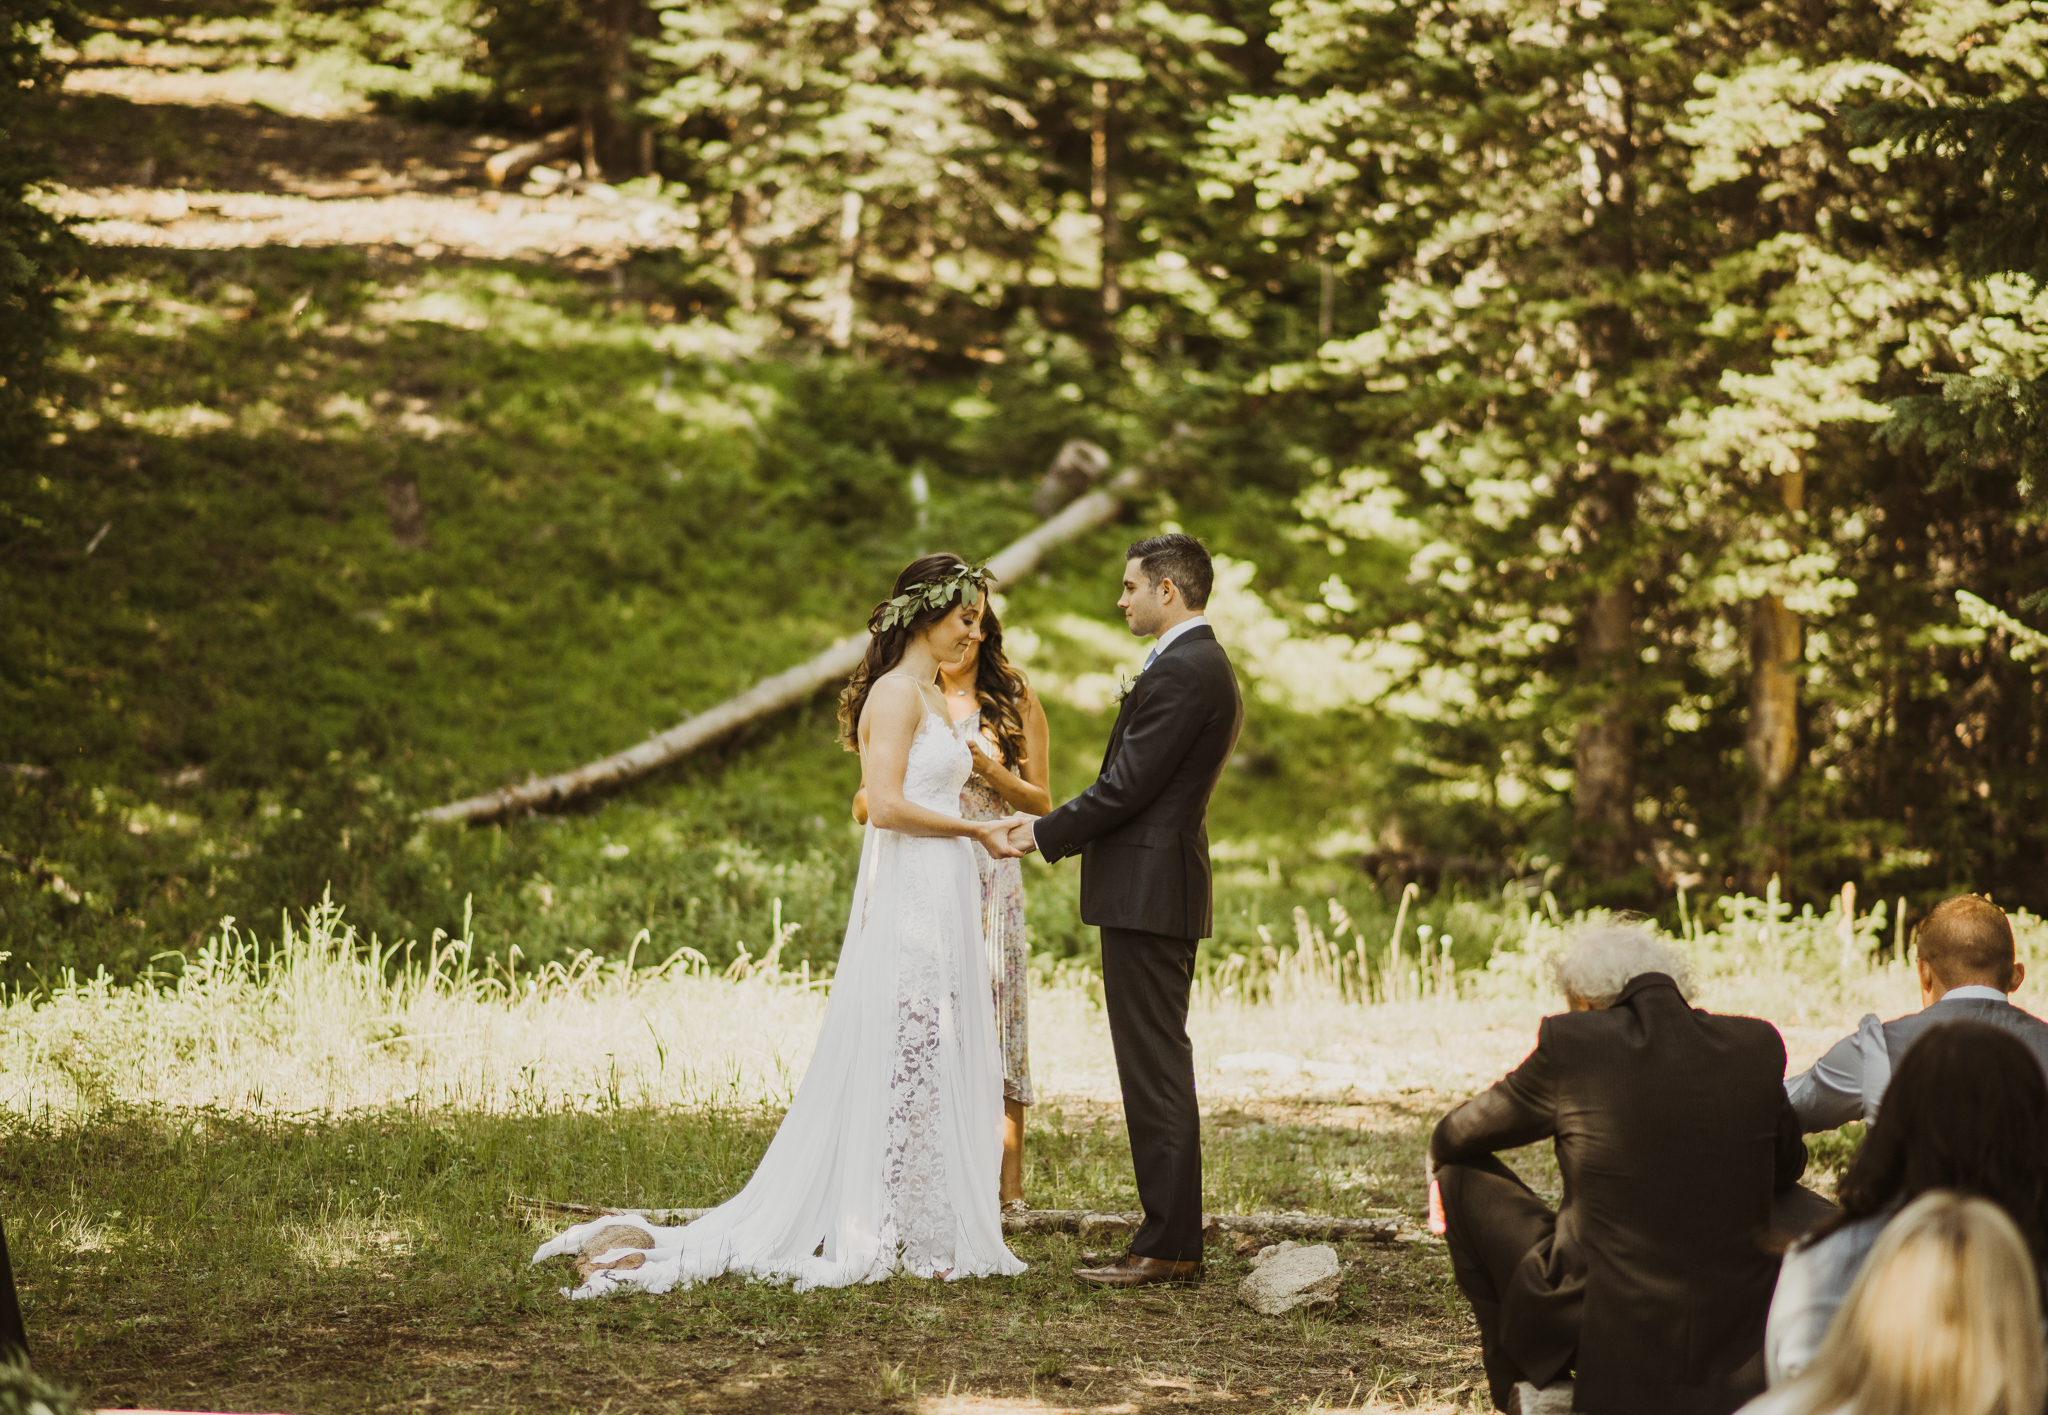 ©Isaiah + Taylor Photography - Estes National Park Adventure Elopement, Colorado Rockies-24.jpg